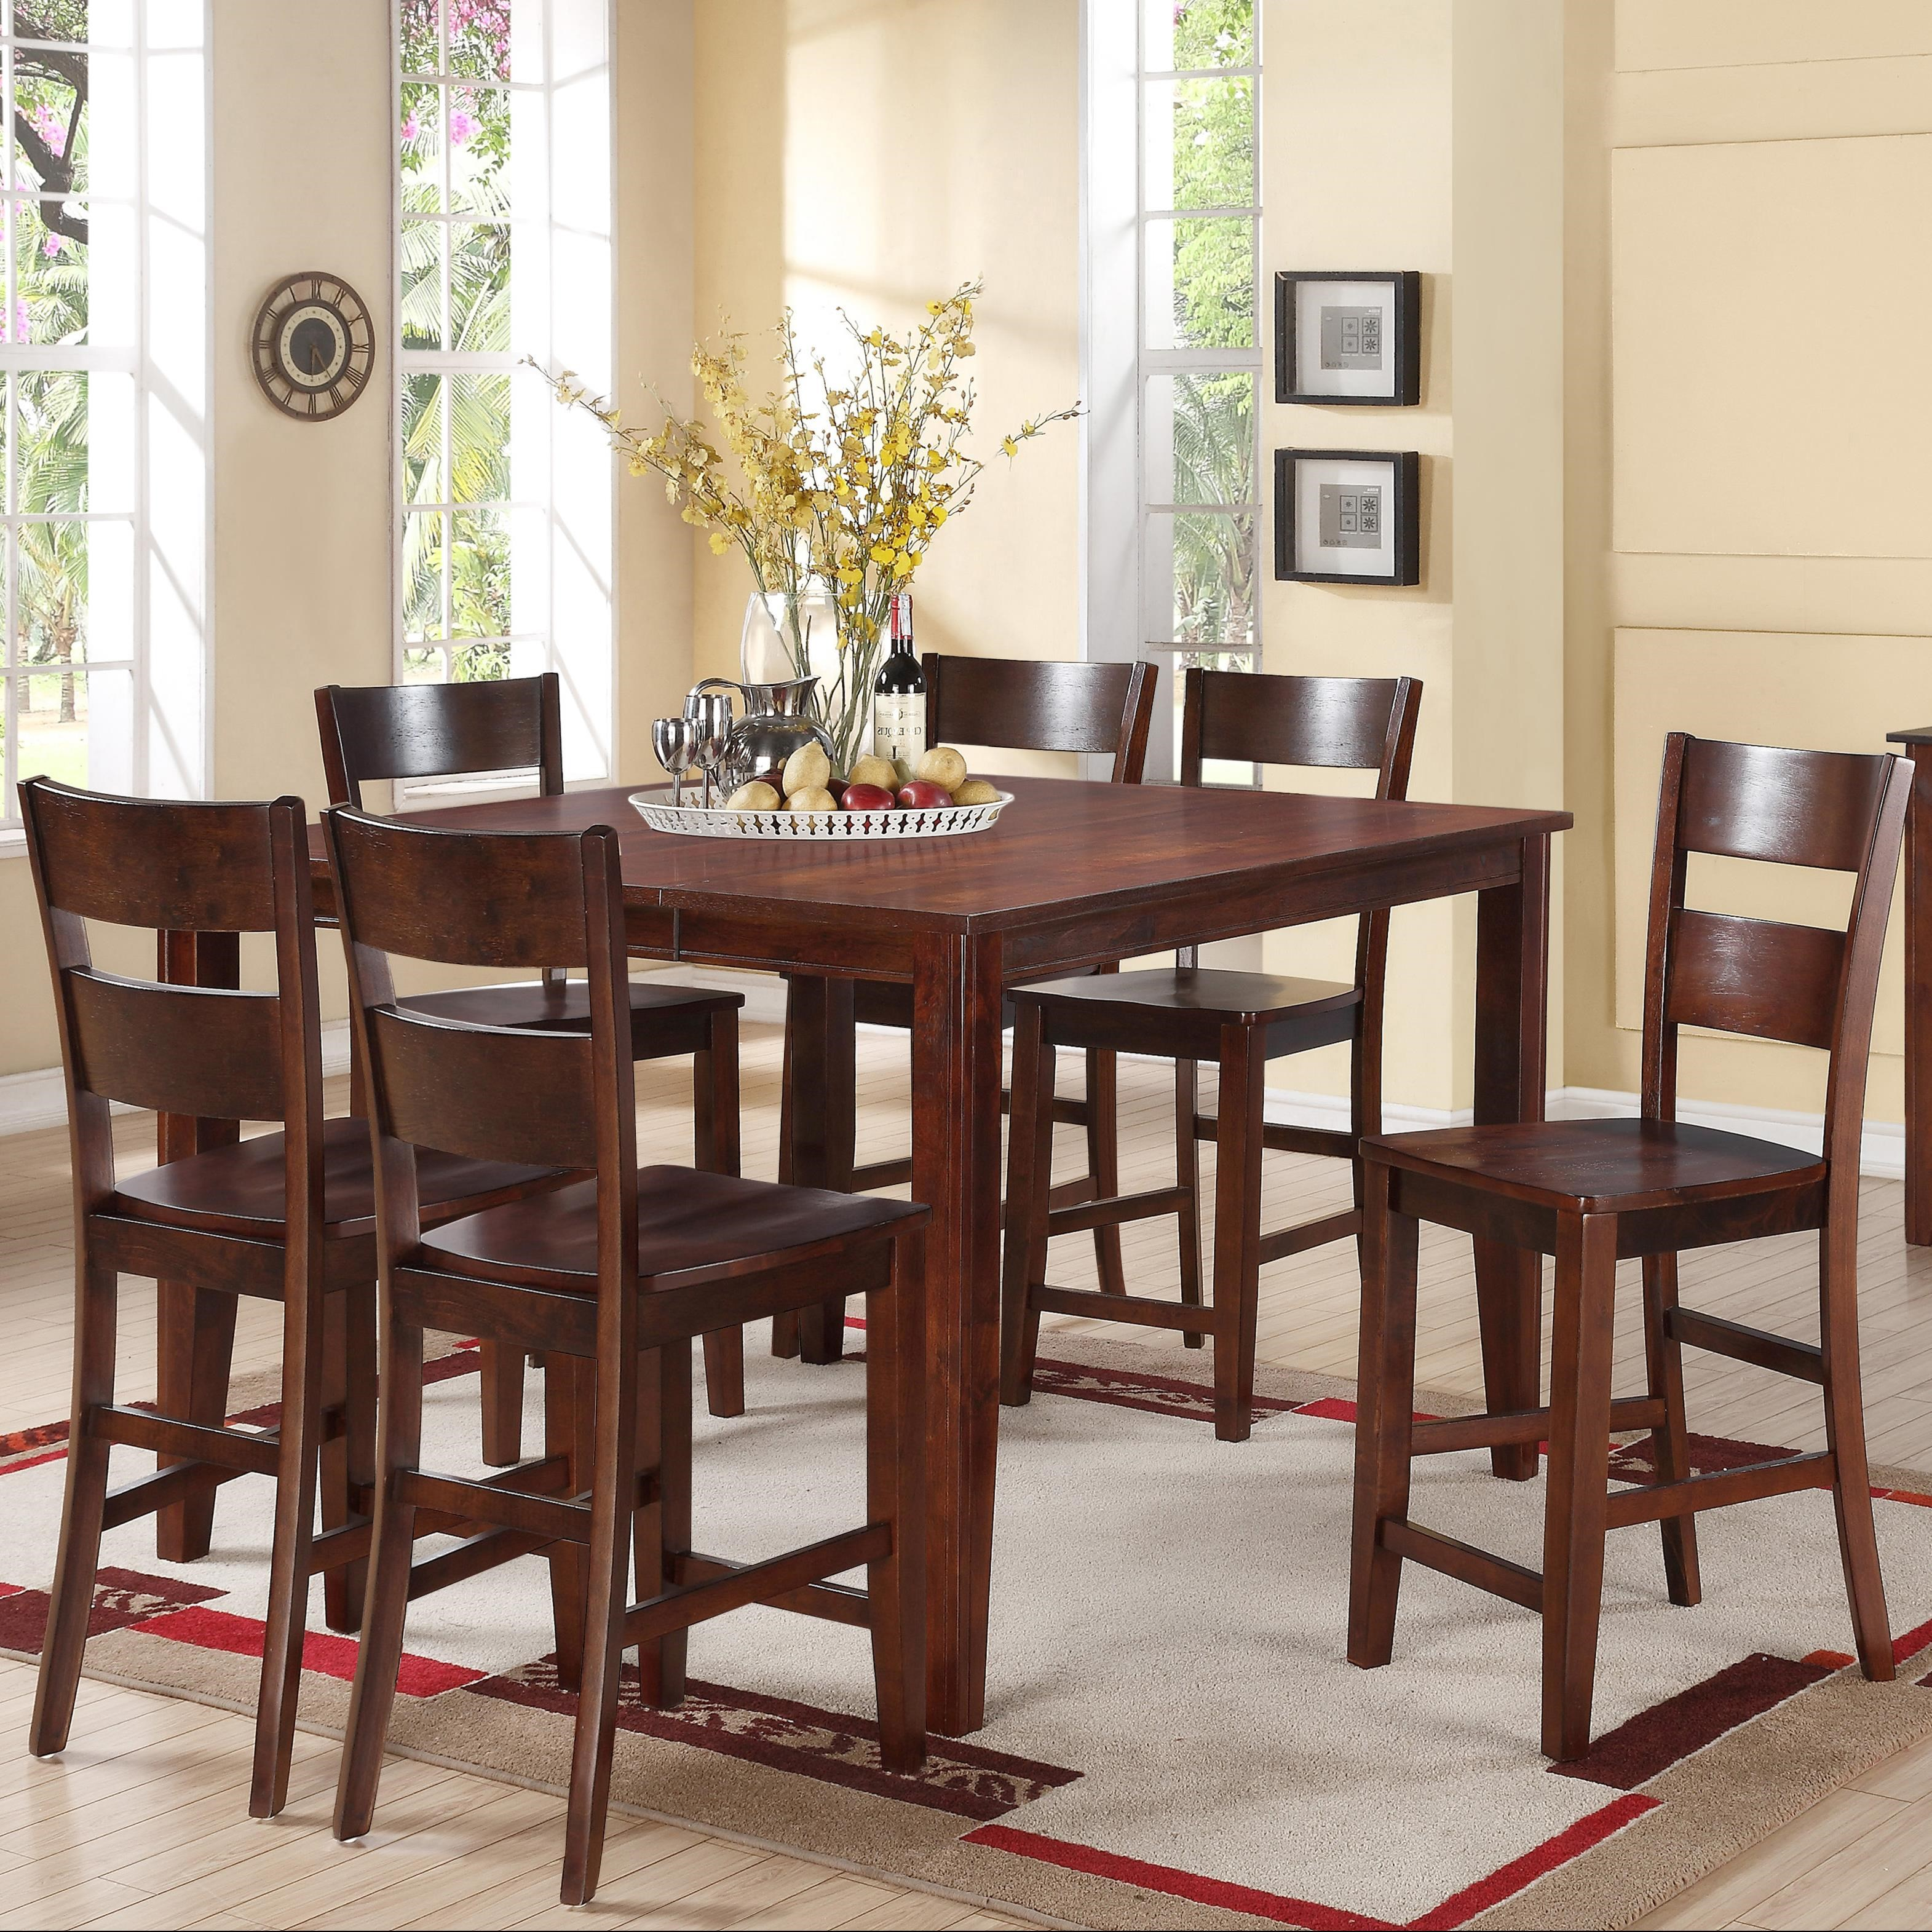 Bon Holland House 82037 Piece Counter Height Dining Set ...